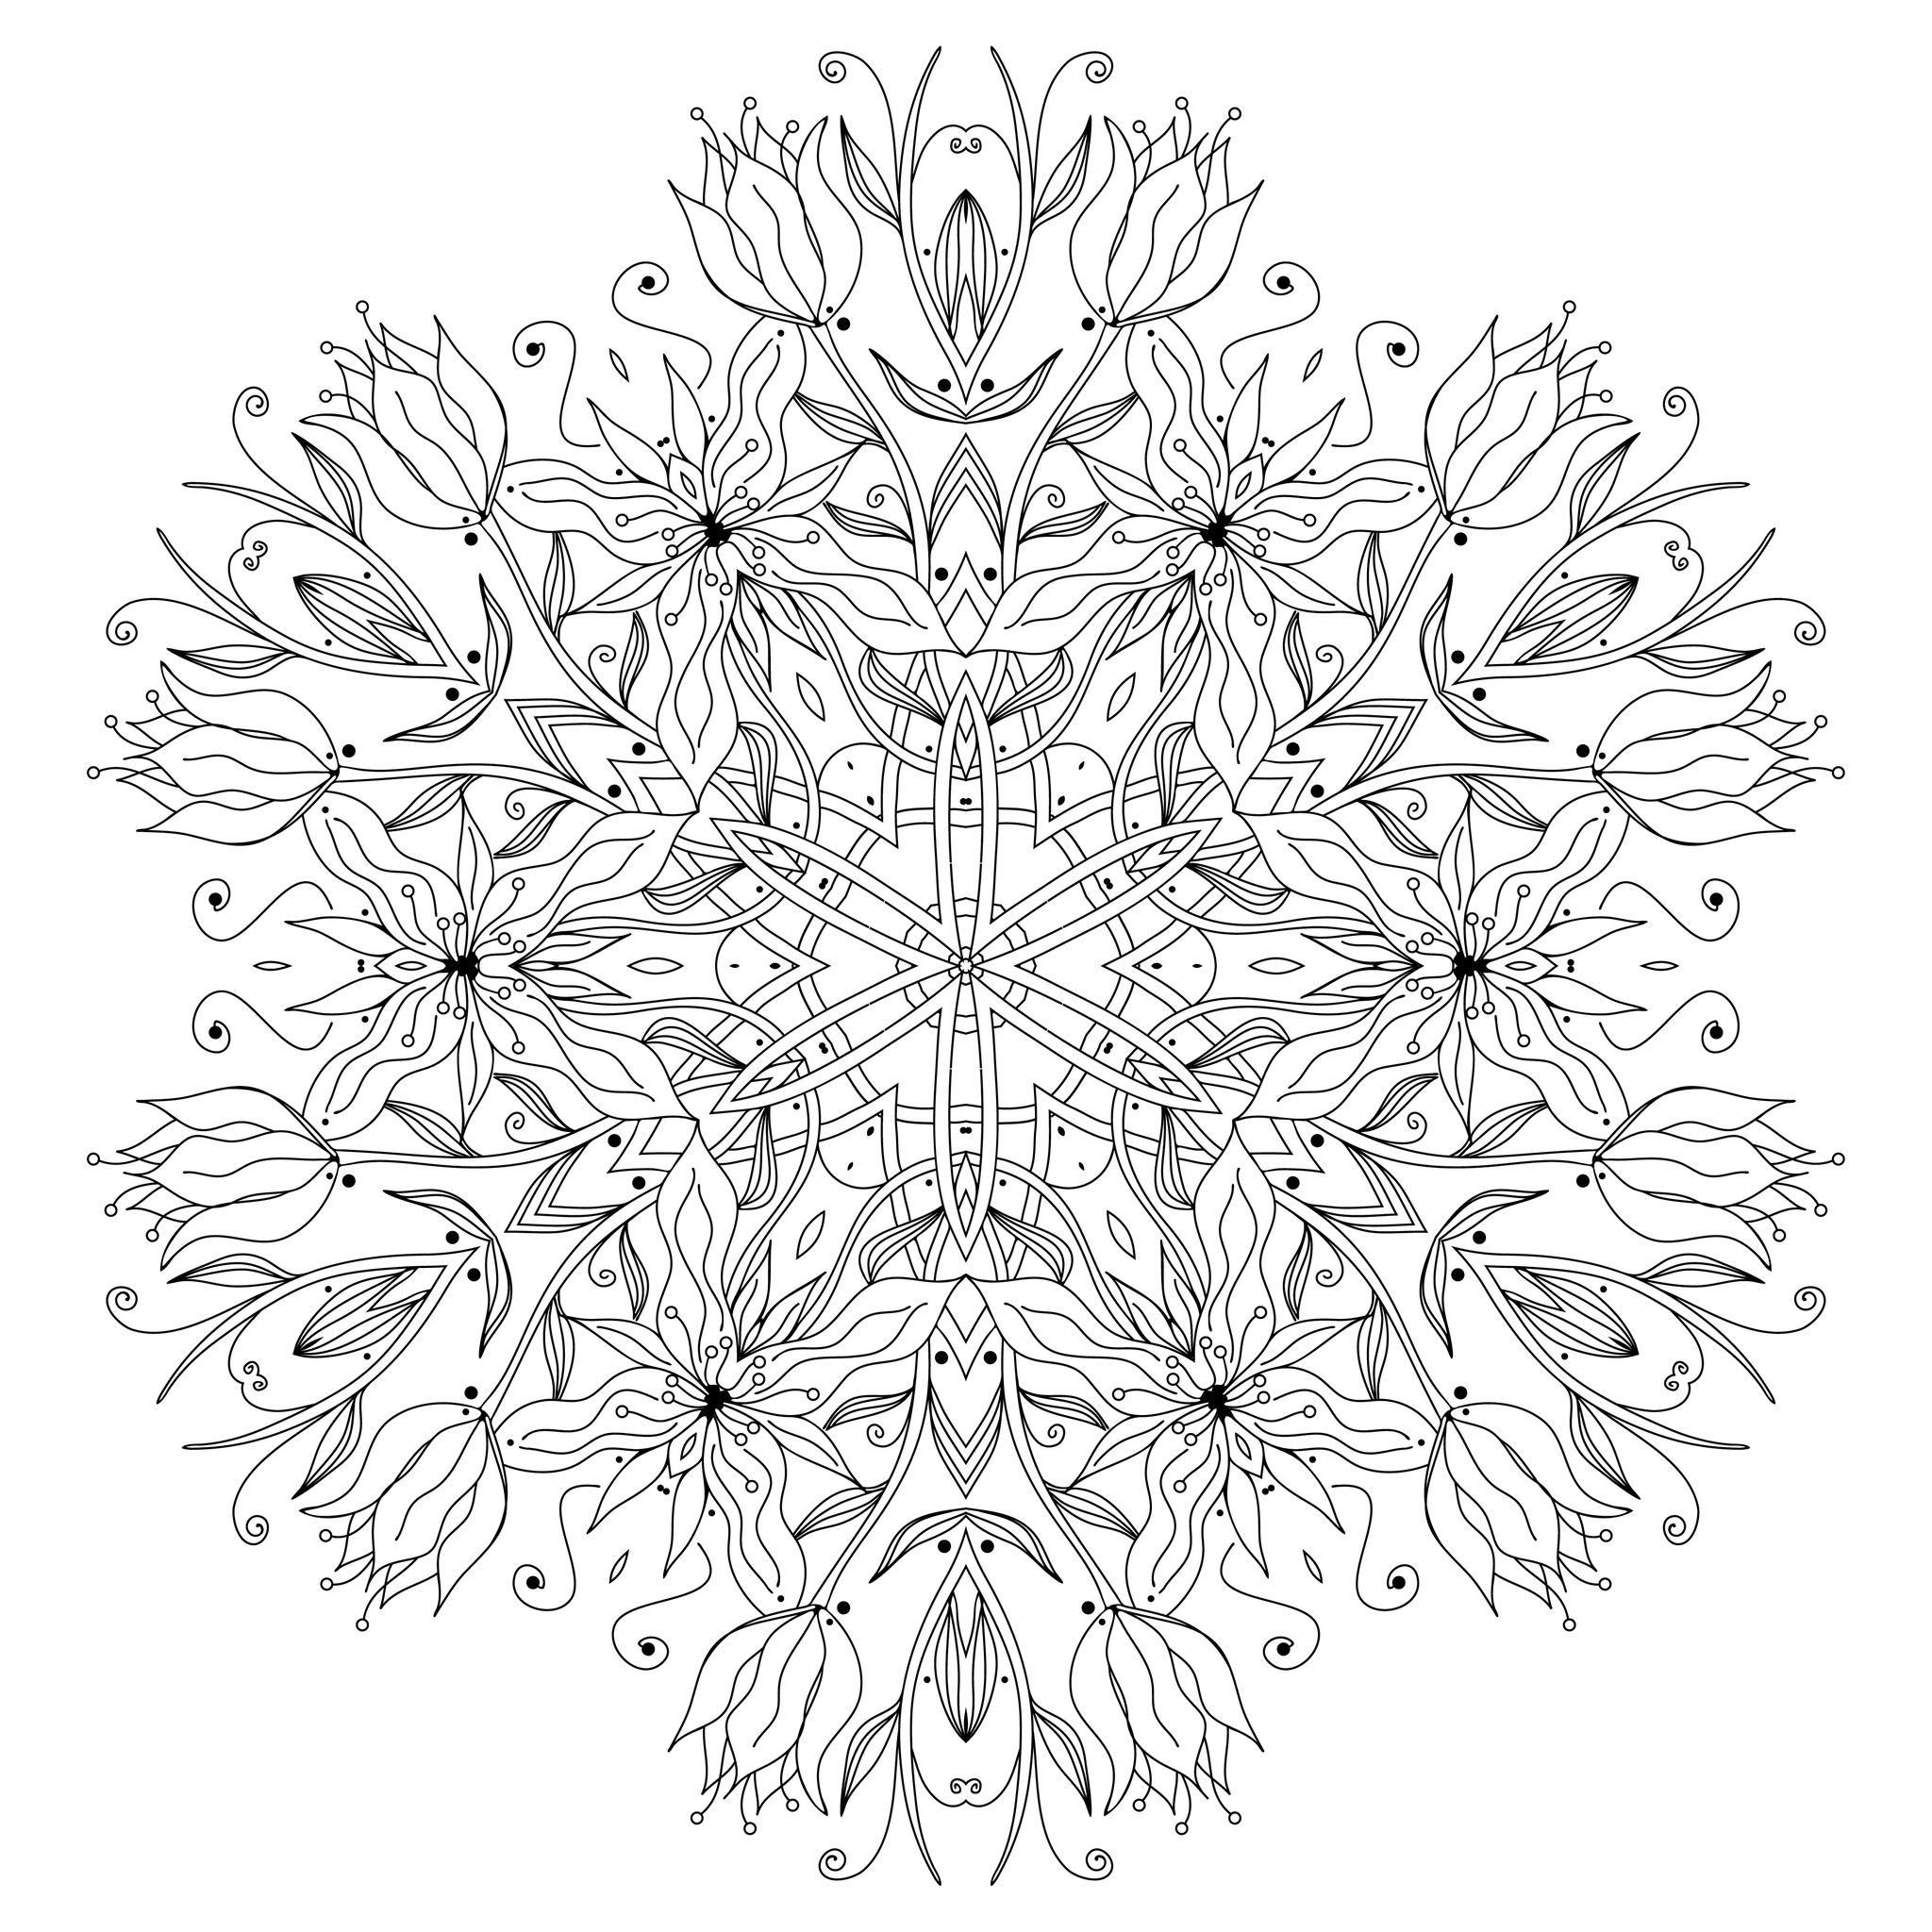 smooth flowers and vegetal patterns mandala to color by epic22